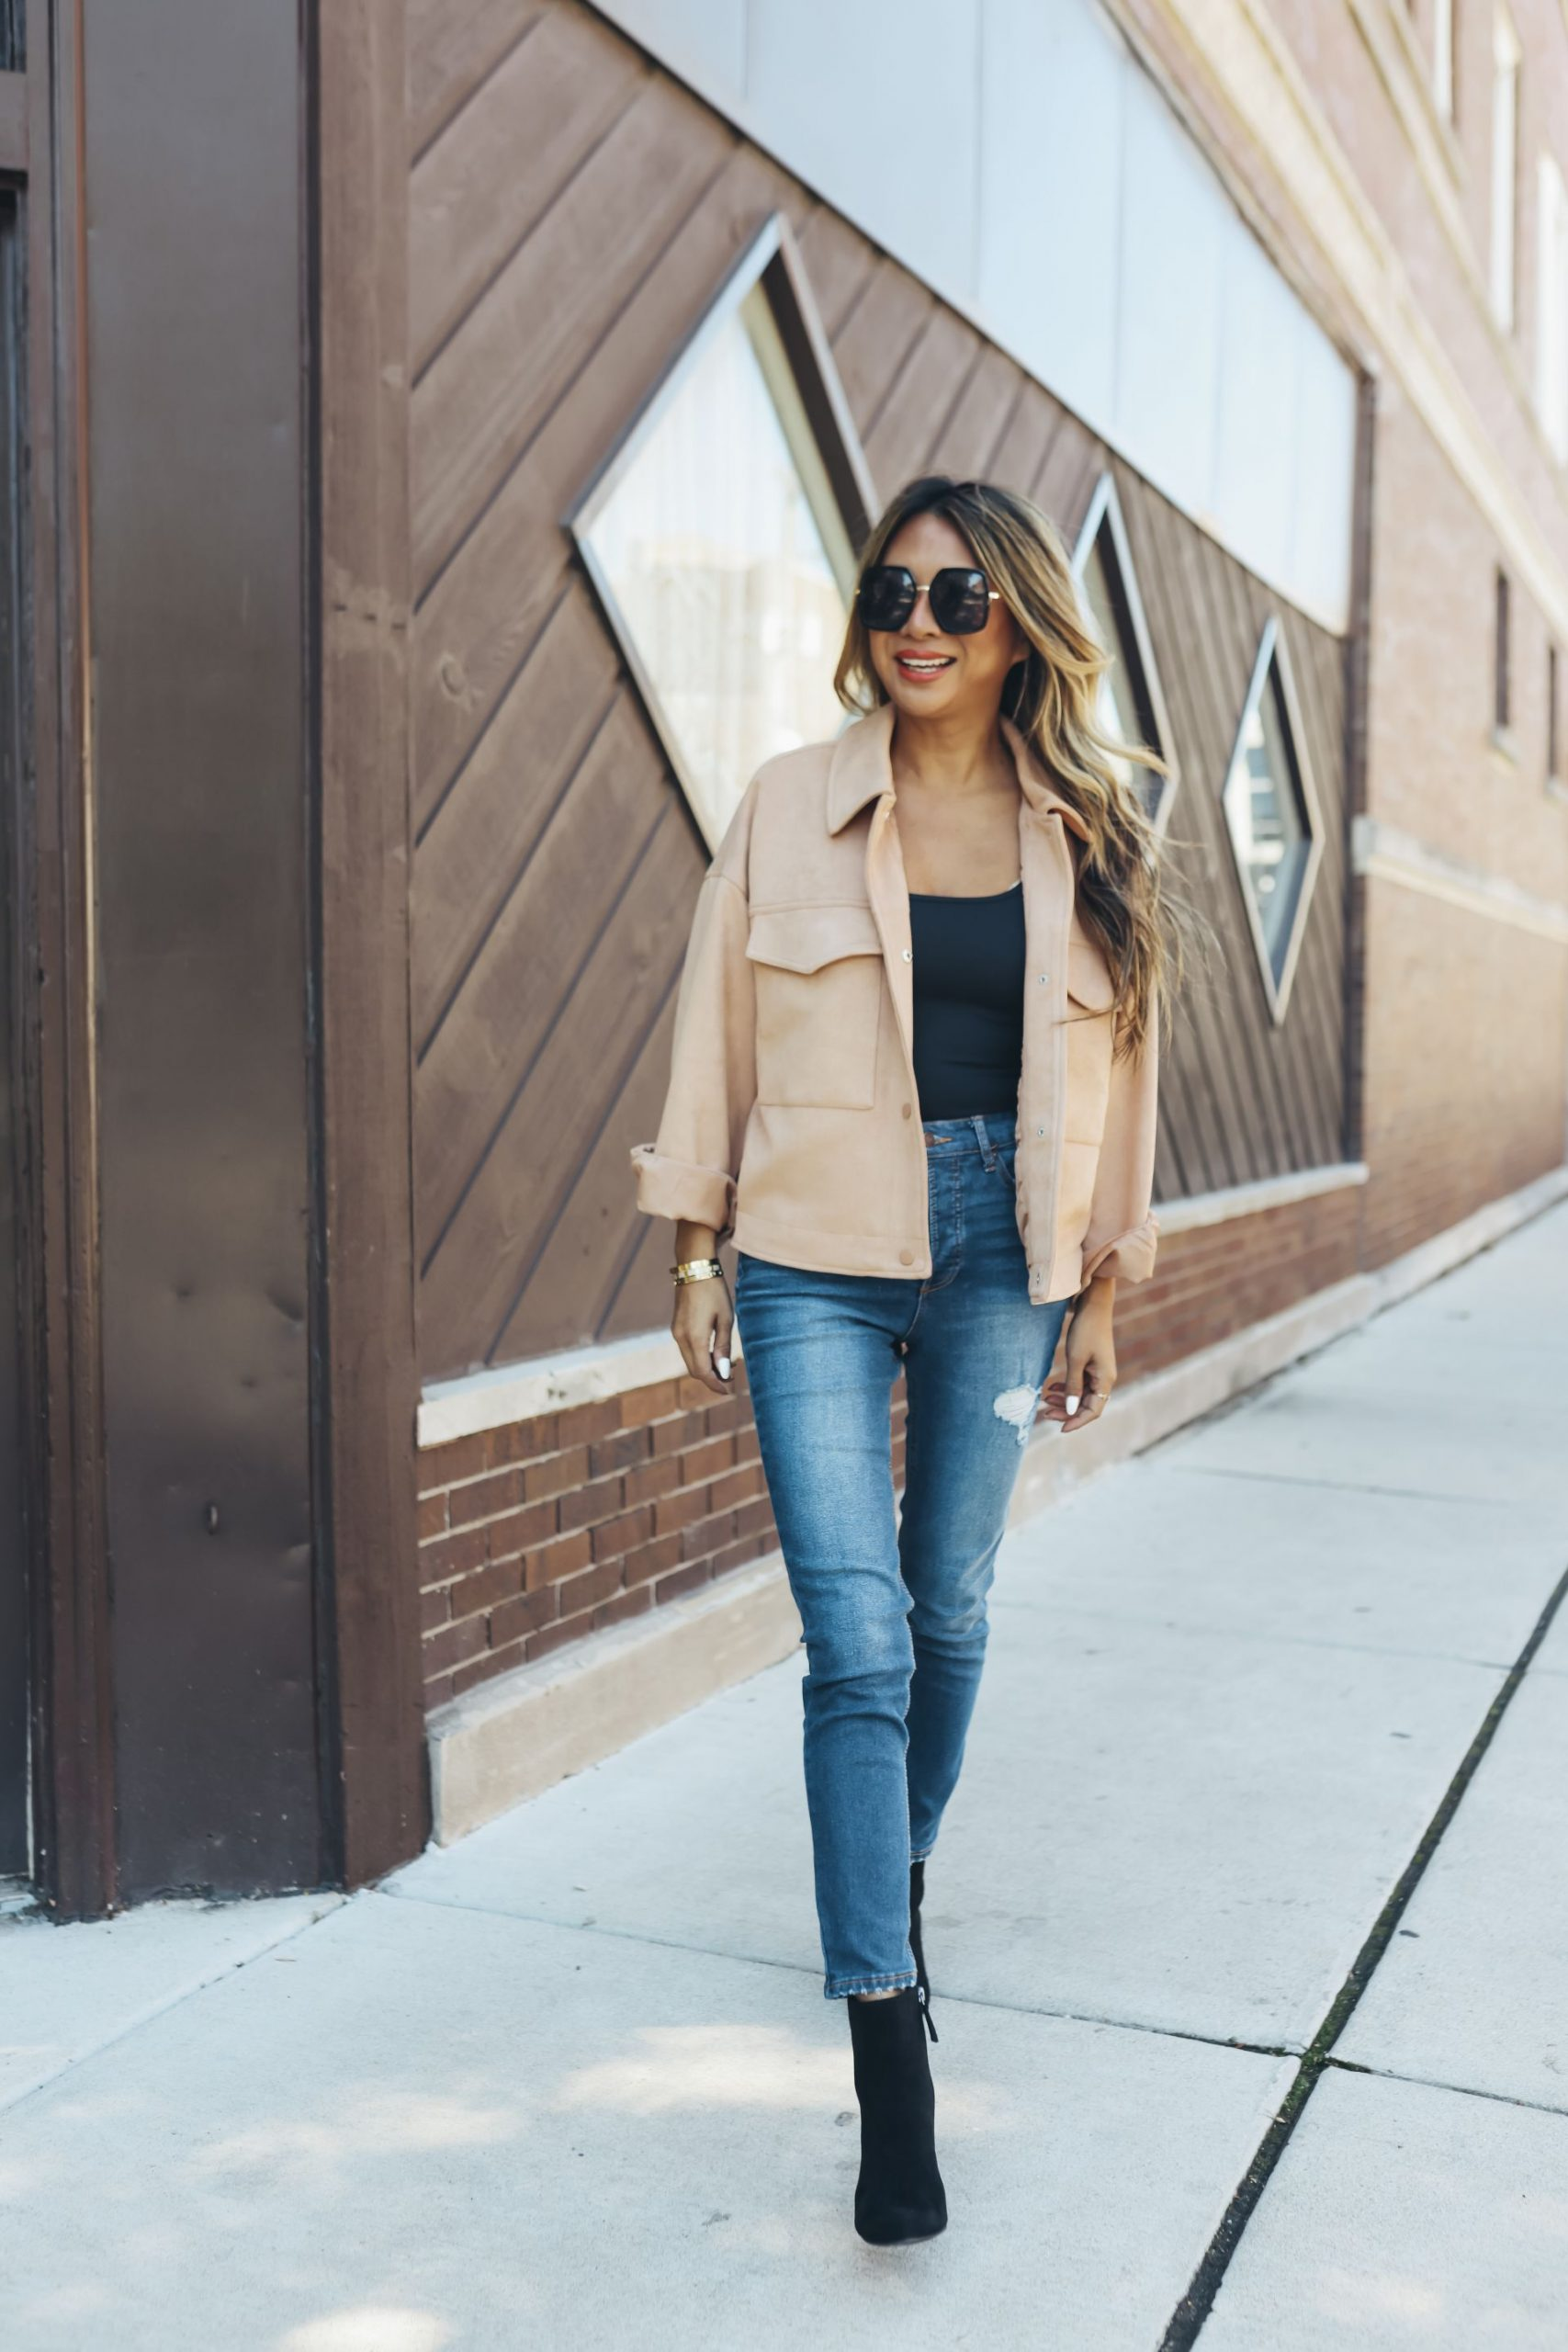 Fall Fashion under $50 from Walmart, Fall Fashion under $50 from Walmart, fall outfit inspiration, fall outfit ideas, affordable fall fashion, affordable fall outfits, affordable fall style, fall outfit inspo, fall women's outfits, cold weather style, neutral shacket, shacket outfit ideas, camel shacket outfit, camel shirt outfit, suede shacket outfit, Red Soles and Red Wine, jennifer Worman, fall outfit photography, style photography ideas, fall style aesthetic